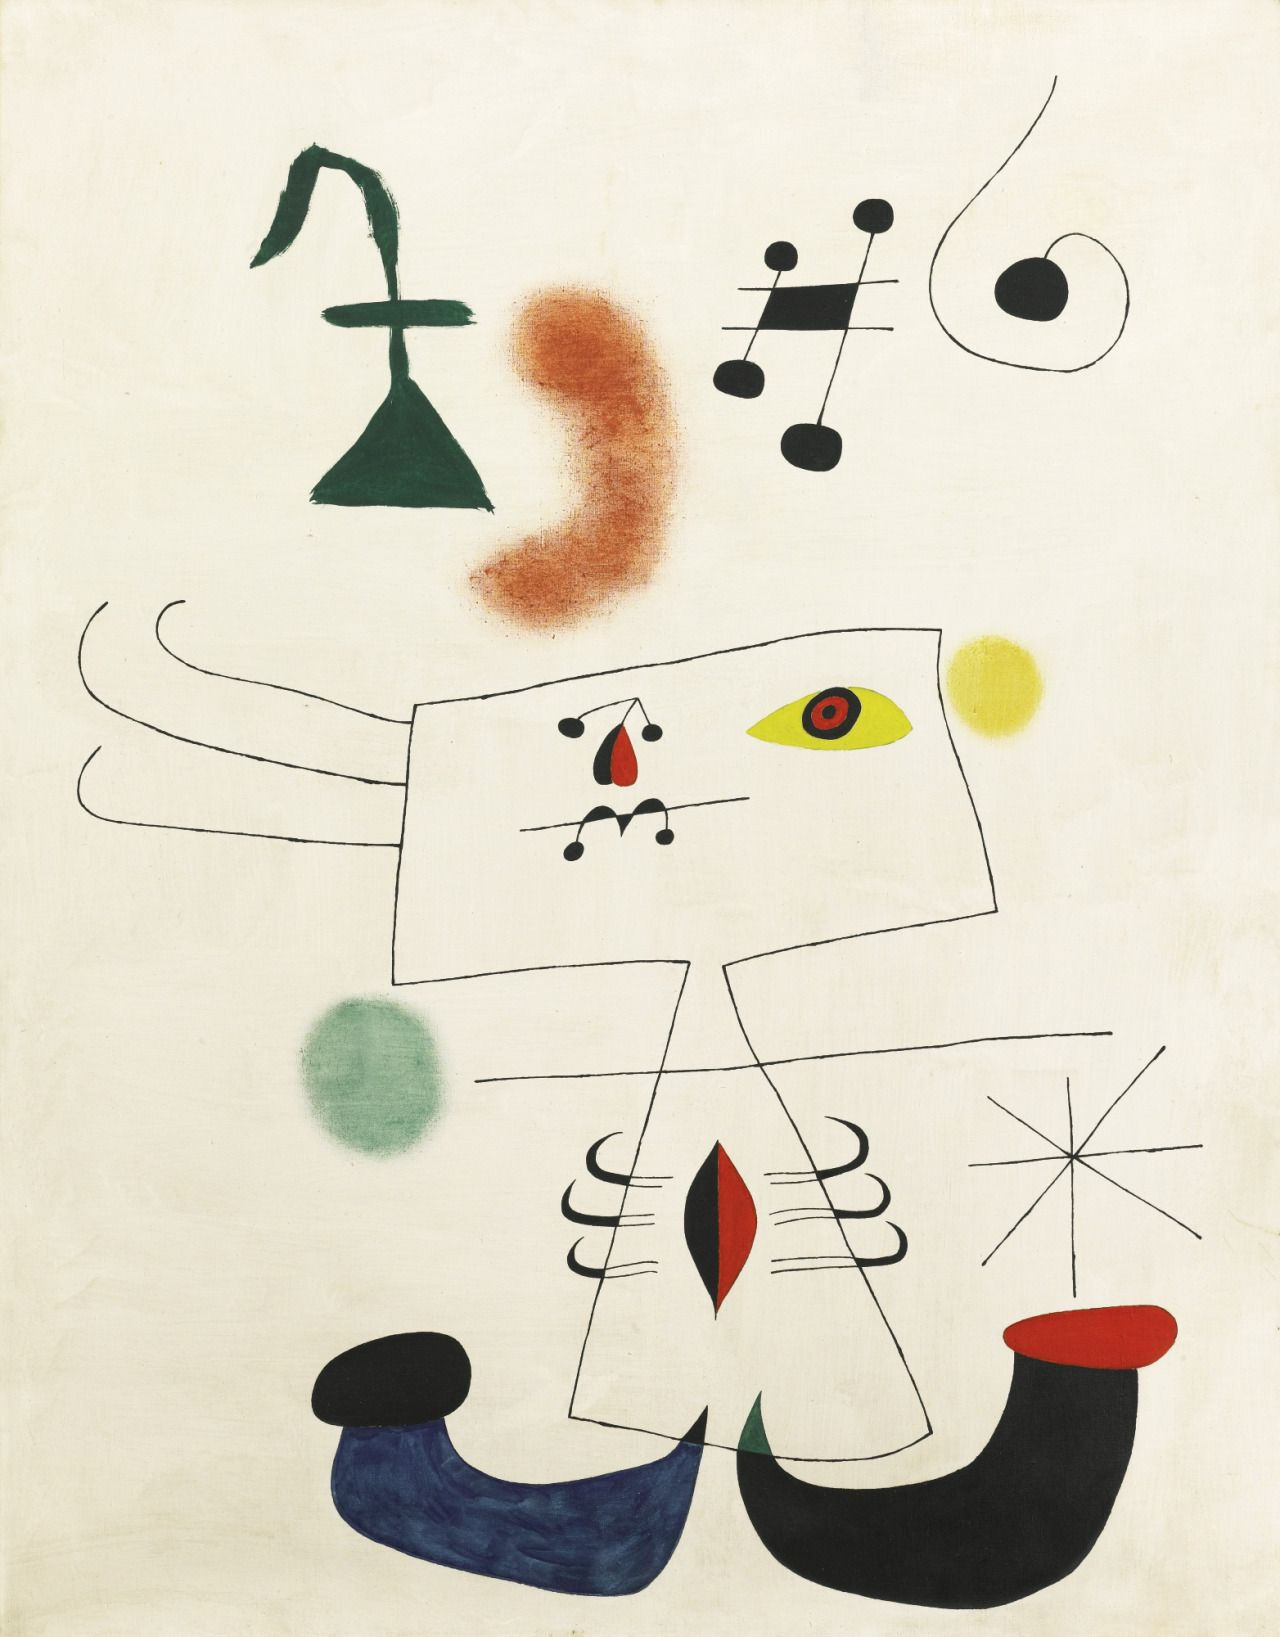 Joan Miró (1893- 1983) Femme rêvant de l'évasion (Woman Dreaming of Escape) 1 February 1945 oil on canvas 146 x 114 cm